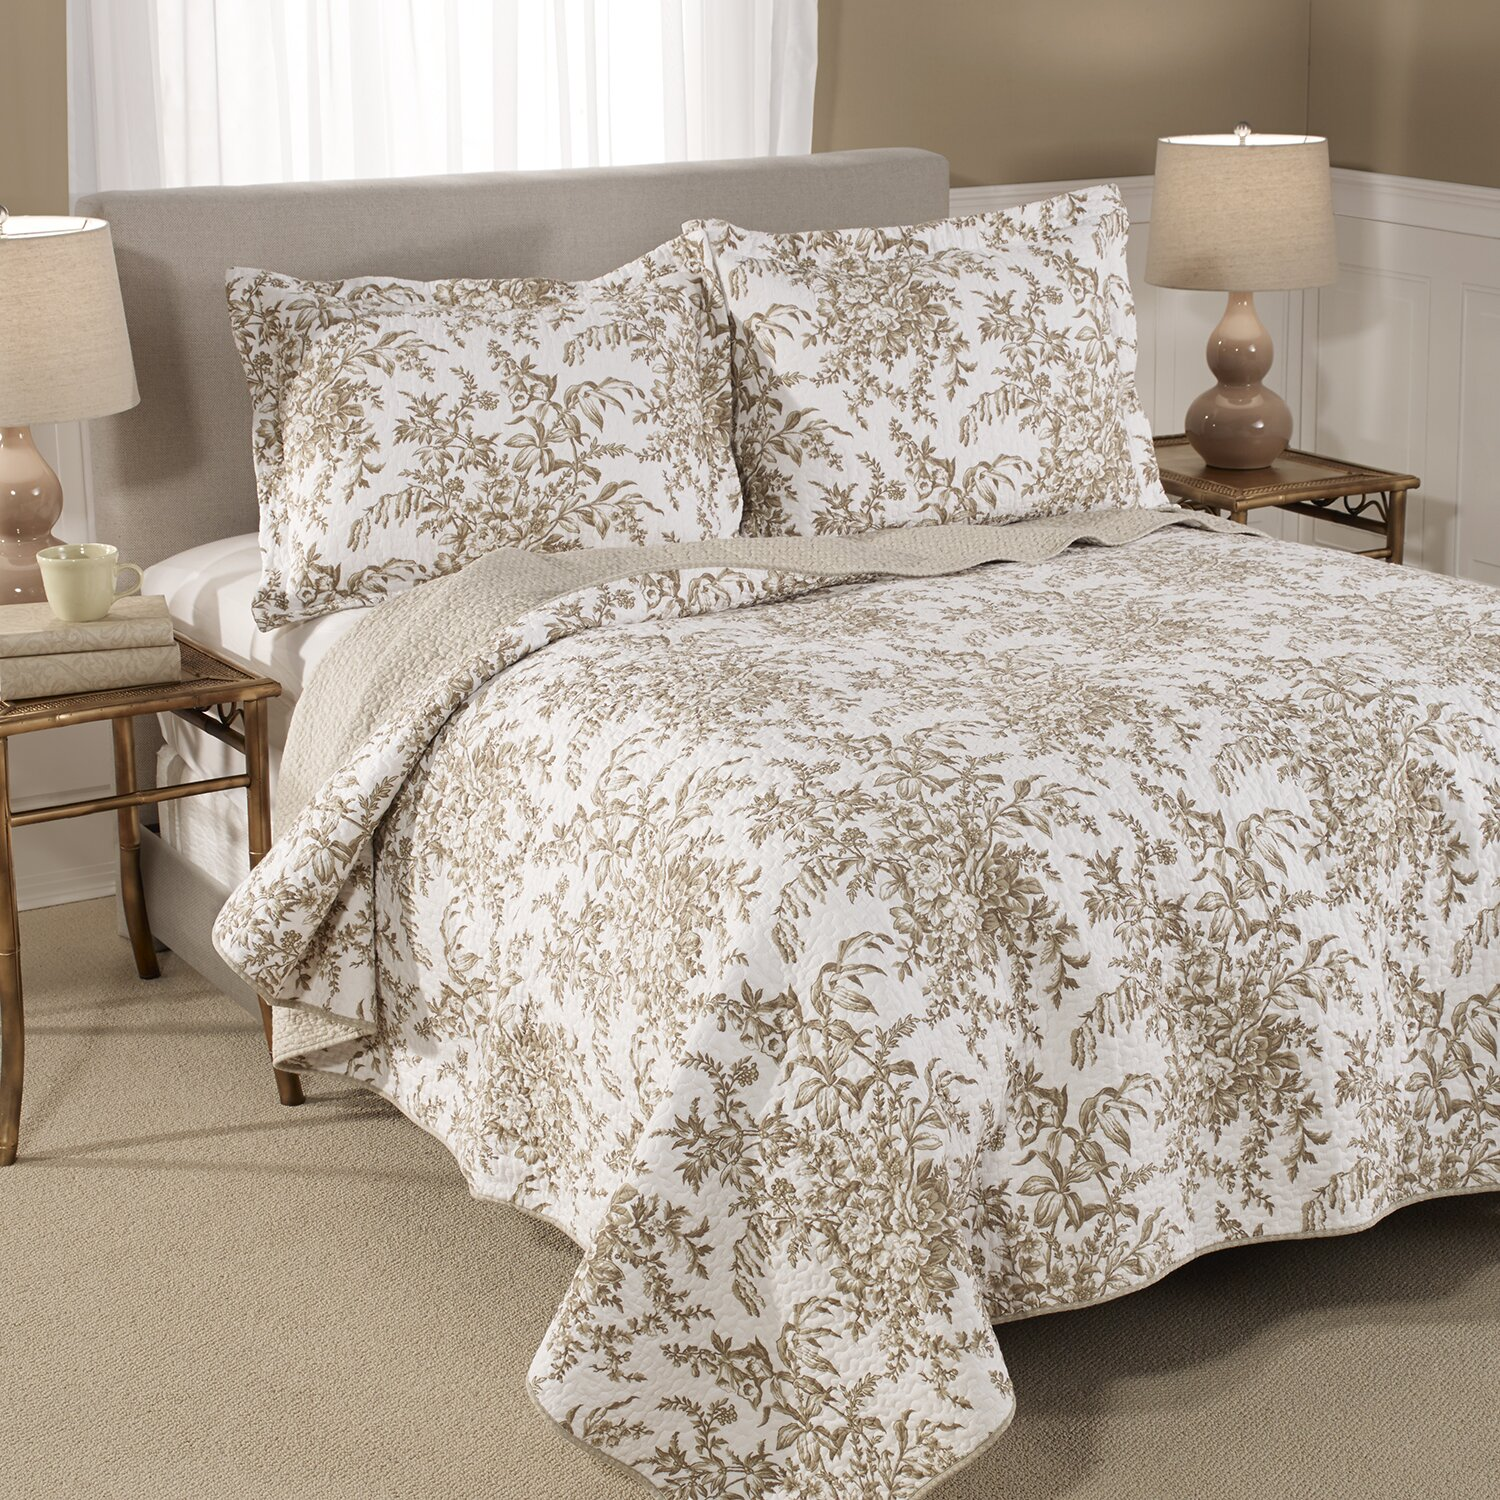 Laura Ashley Home Bedford Cotton Coverlet Set. Laura Ashley Home Bedford Cotton Coverlet Set   Reviews   Wayfair